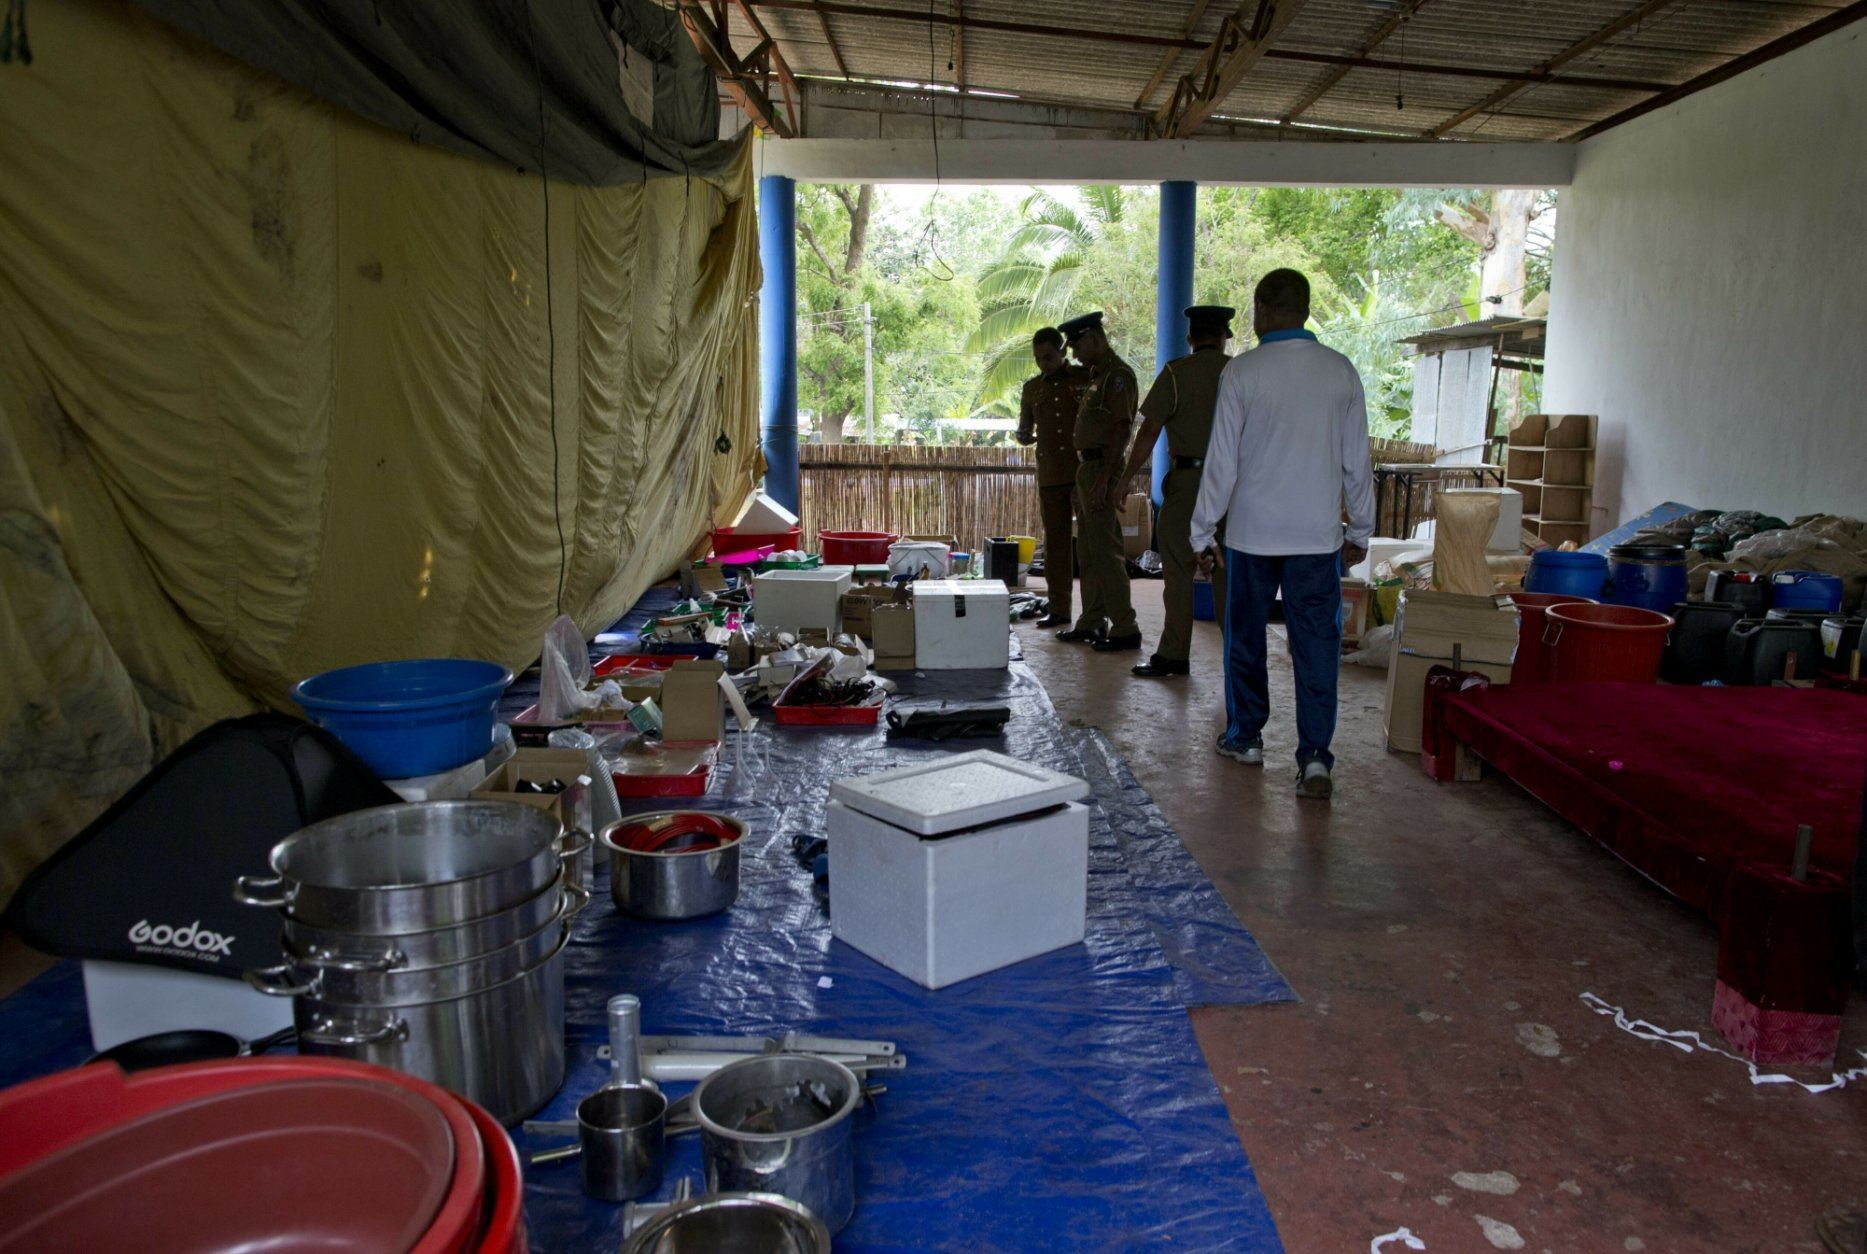 Police officers gather at outdoor stage used for storing evidence seized from militants in Ampara, Sri Lanka, Sunday, April 28, 2019. Police in Ampara showed The Associated Press on Sunday the explosives, chemicals and Islamic State flag they recovered from the site of one security force raid in the region as Sri Lanka's Catholics celebrated at televised Mass in the safety of their homes. (AP Photo/Gemunu Amarasinghe)